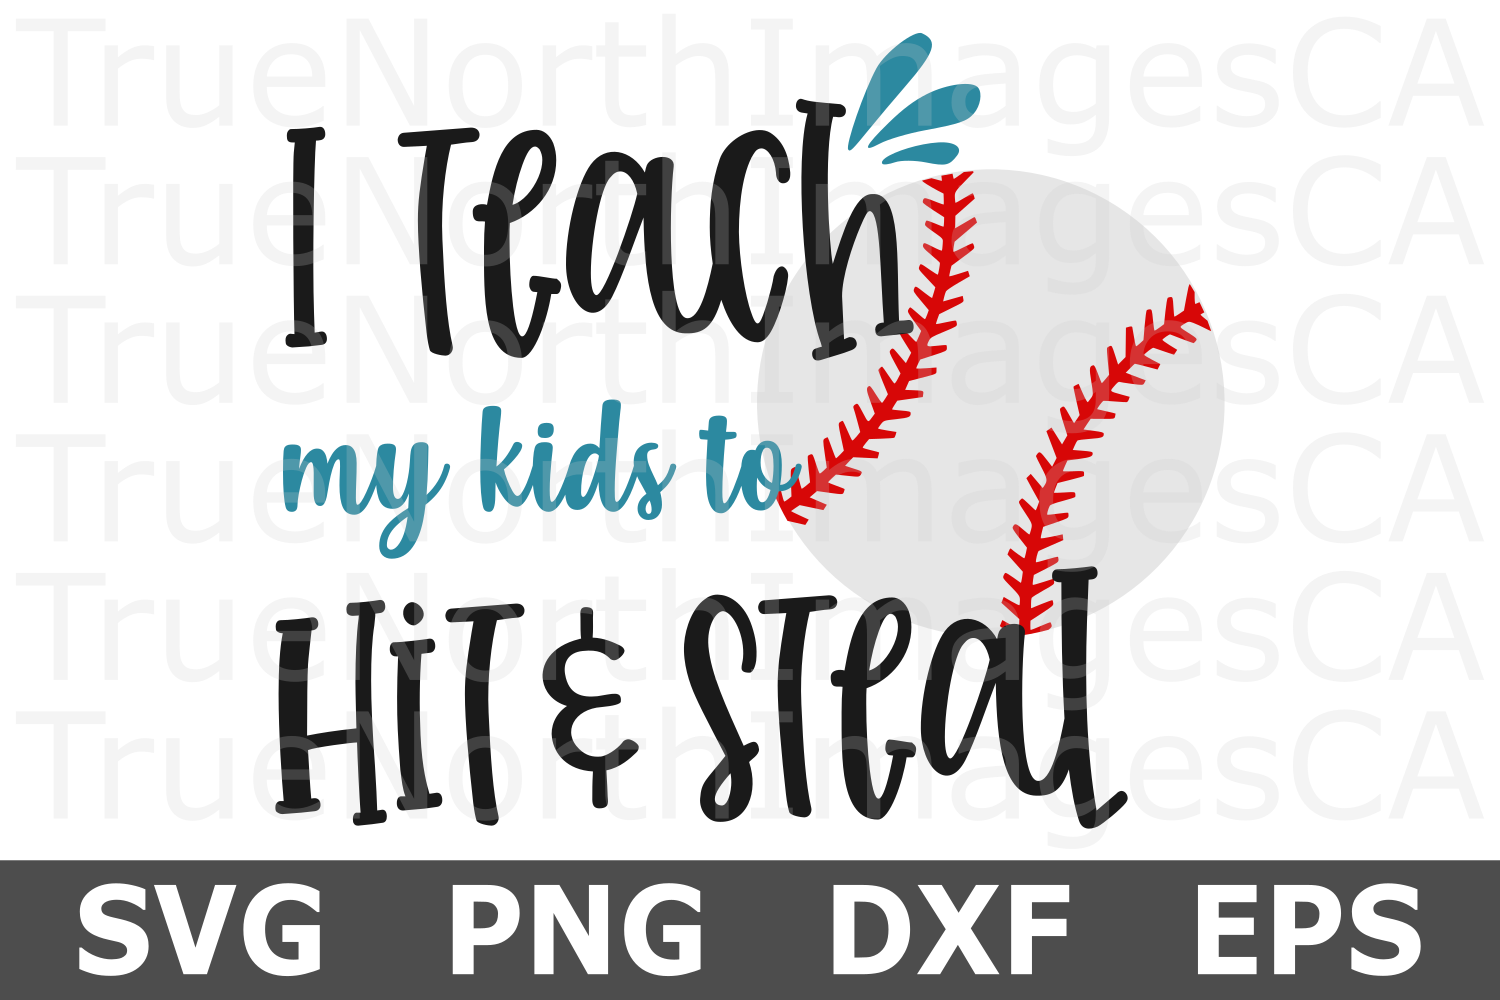 Teach my Kids to Hit and Steal - A Sports SVG Cut File example image 2